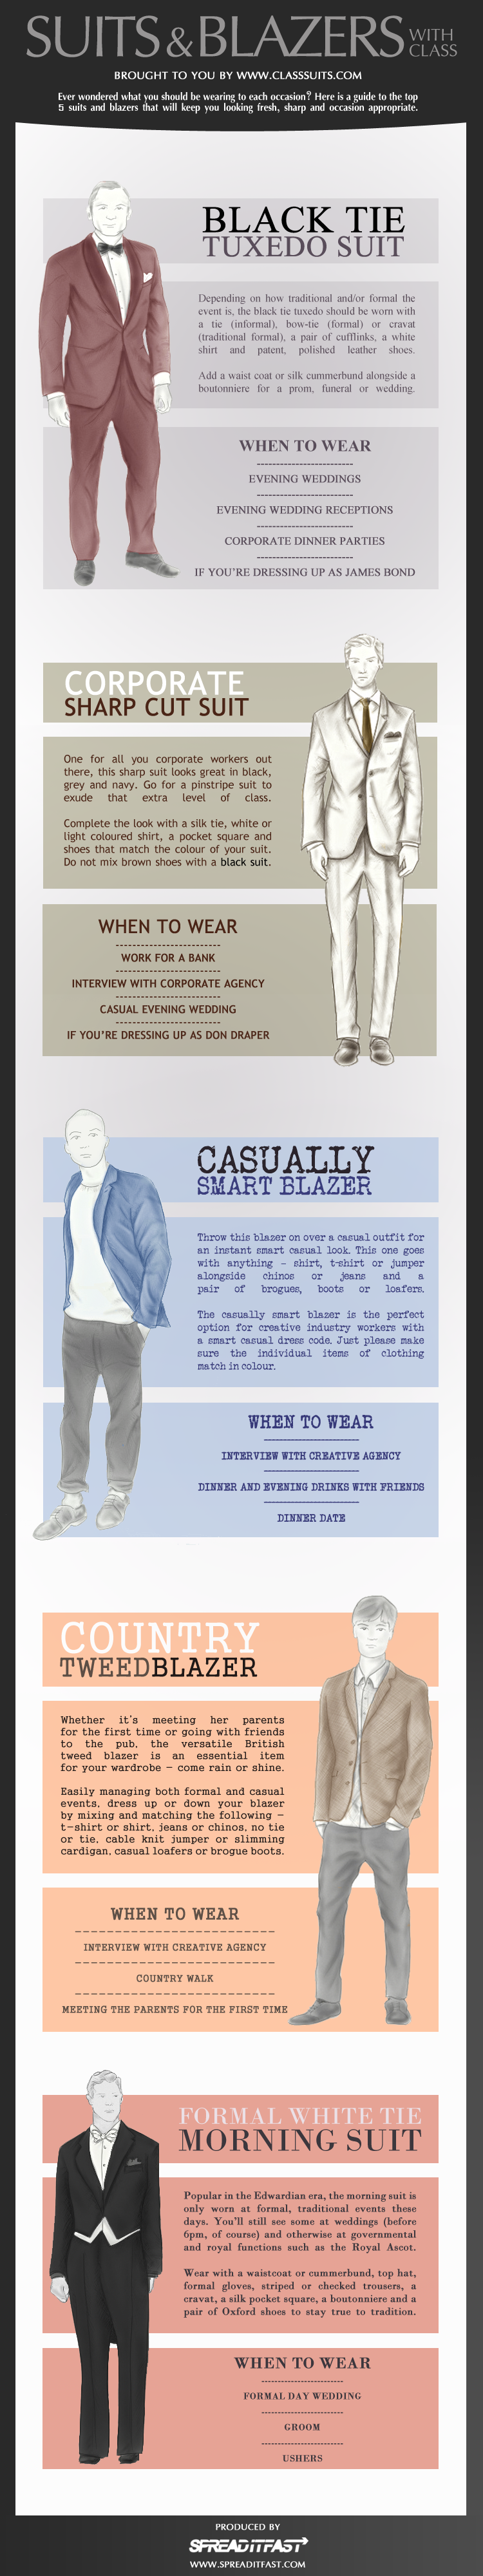 types of suits and blazers